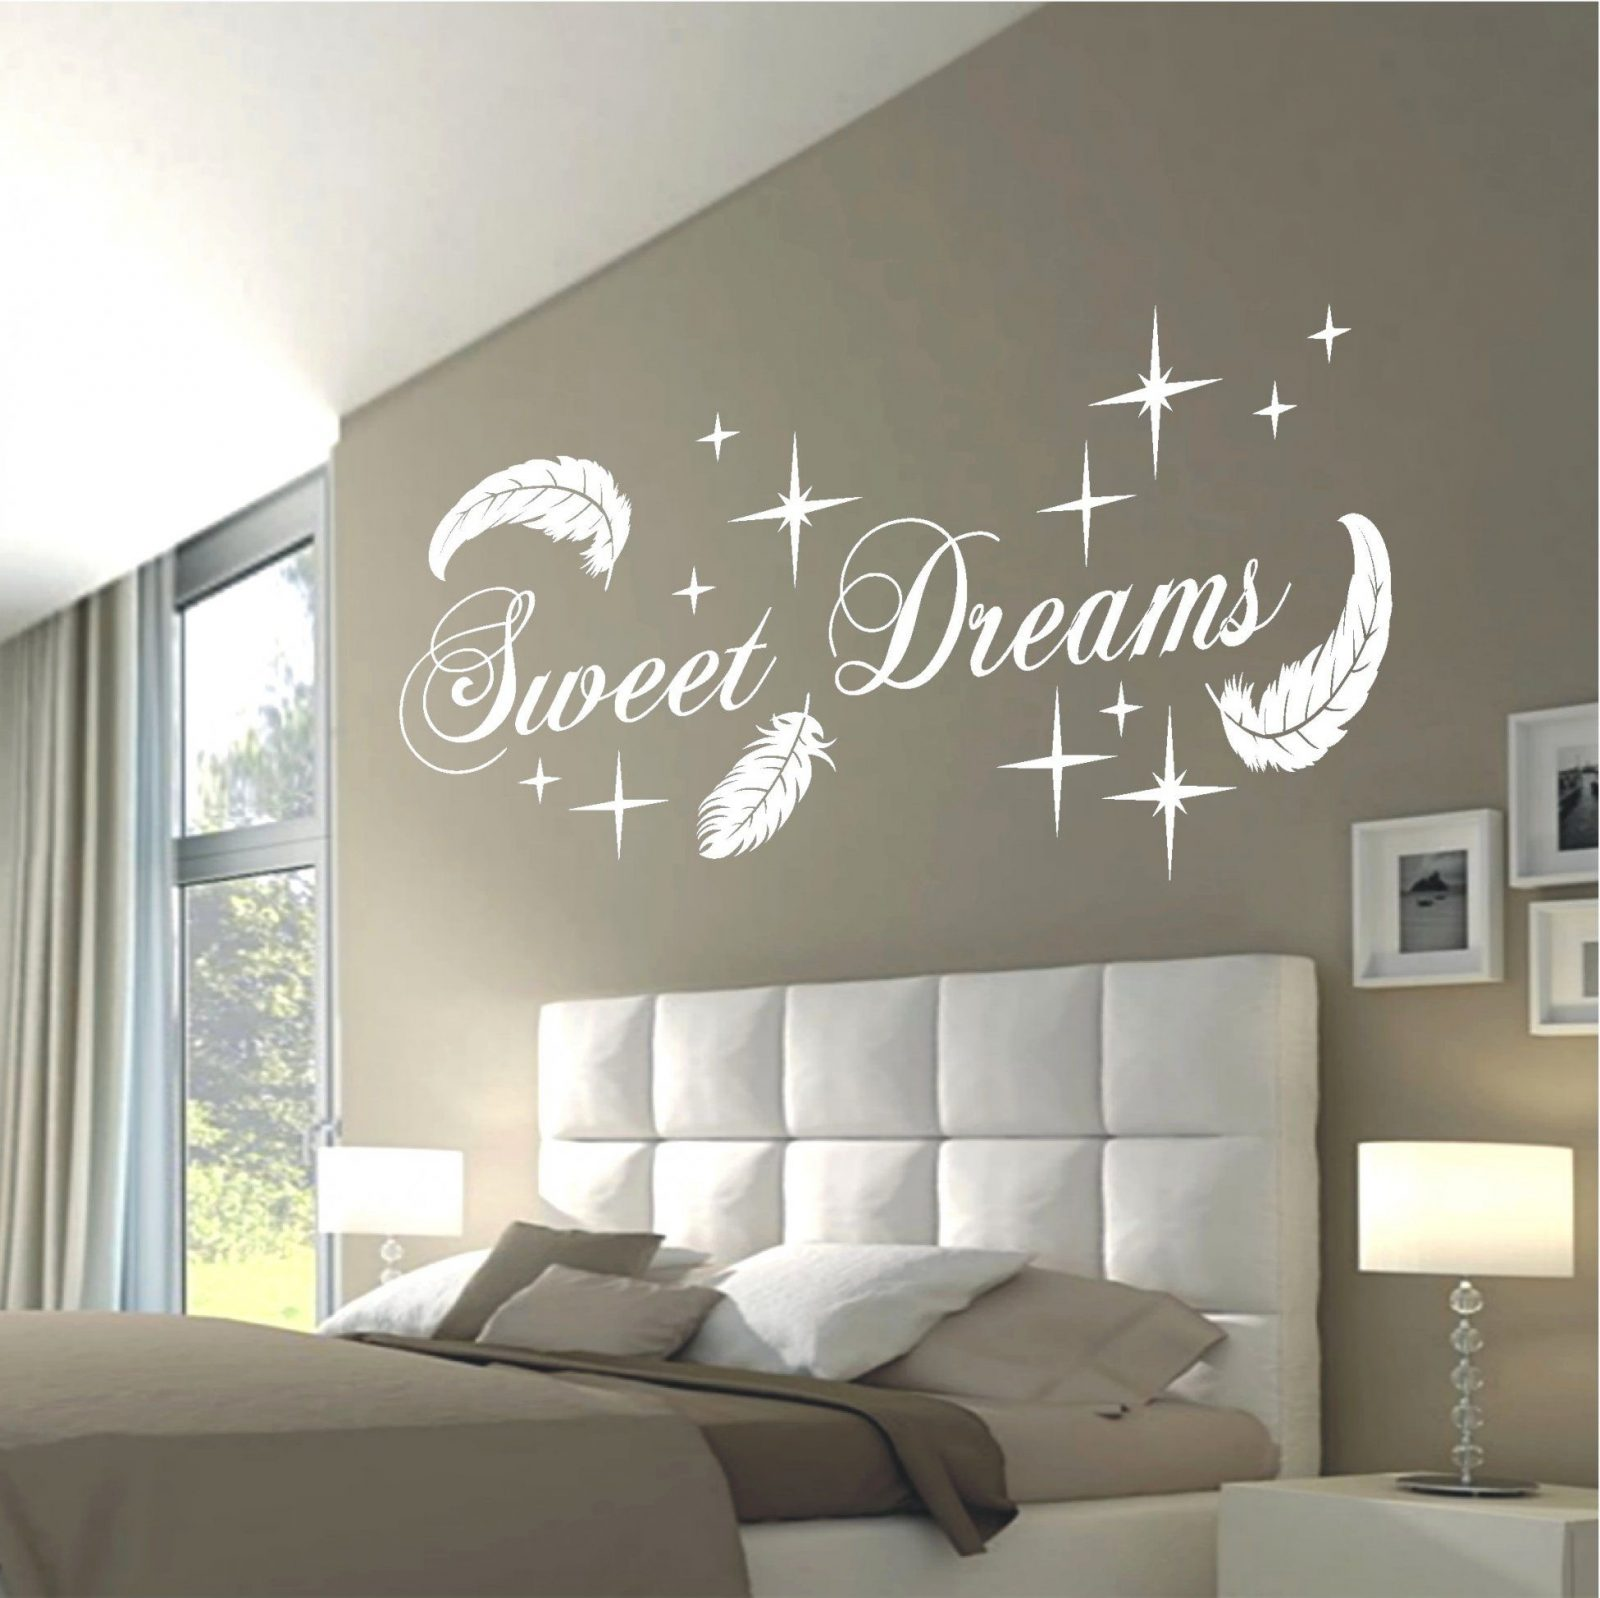 wandtattoo f r schr ge w nde haus design ideen. Black Bedroom Furniture Sets. Home Design Ideas